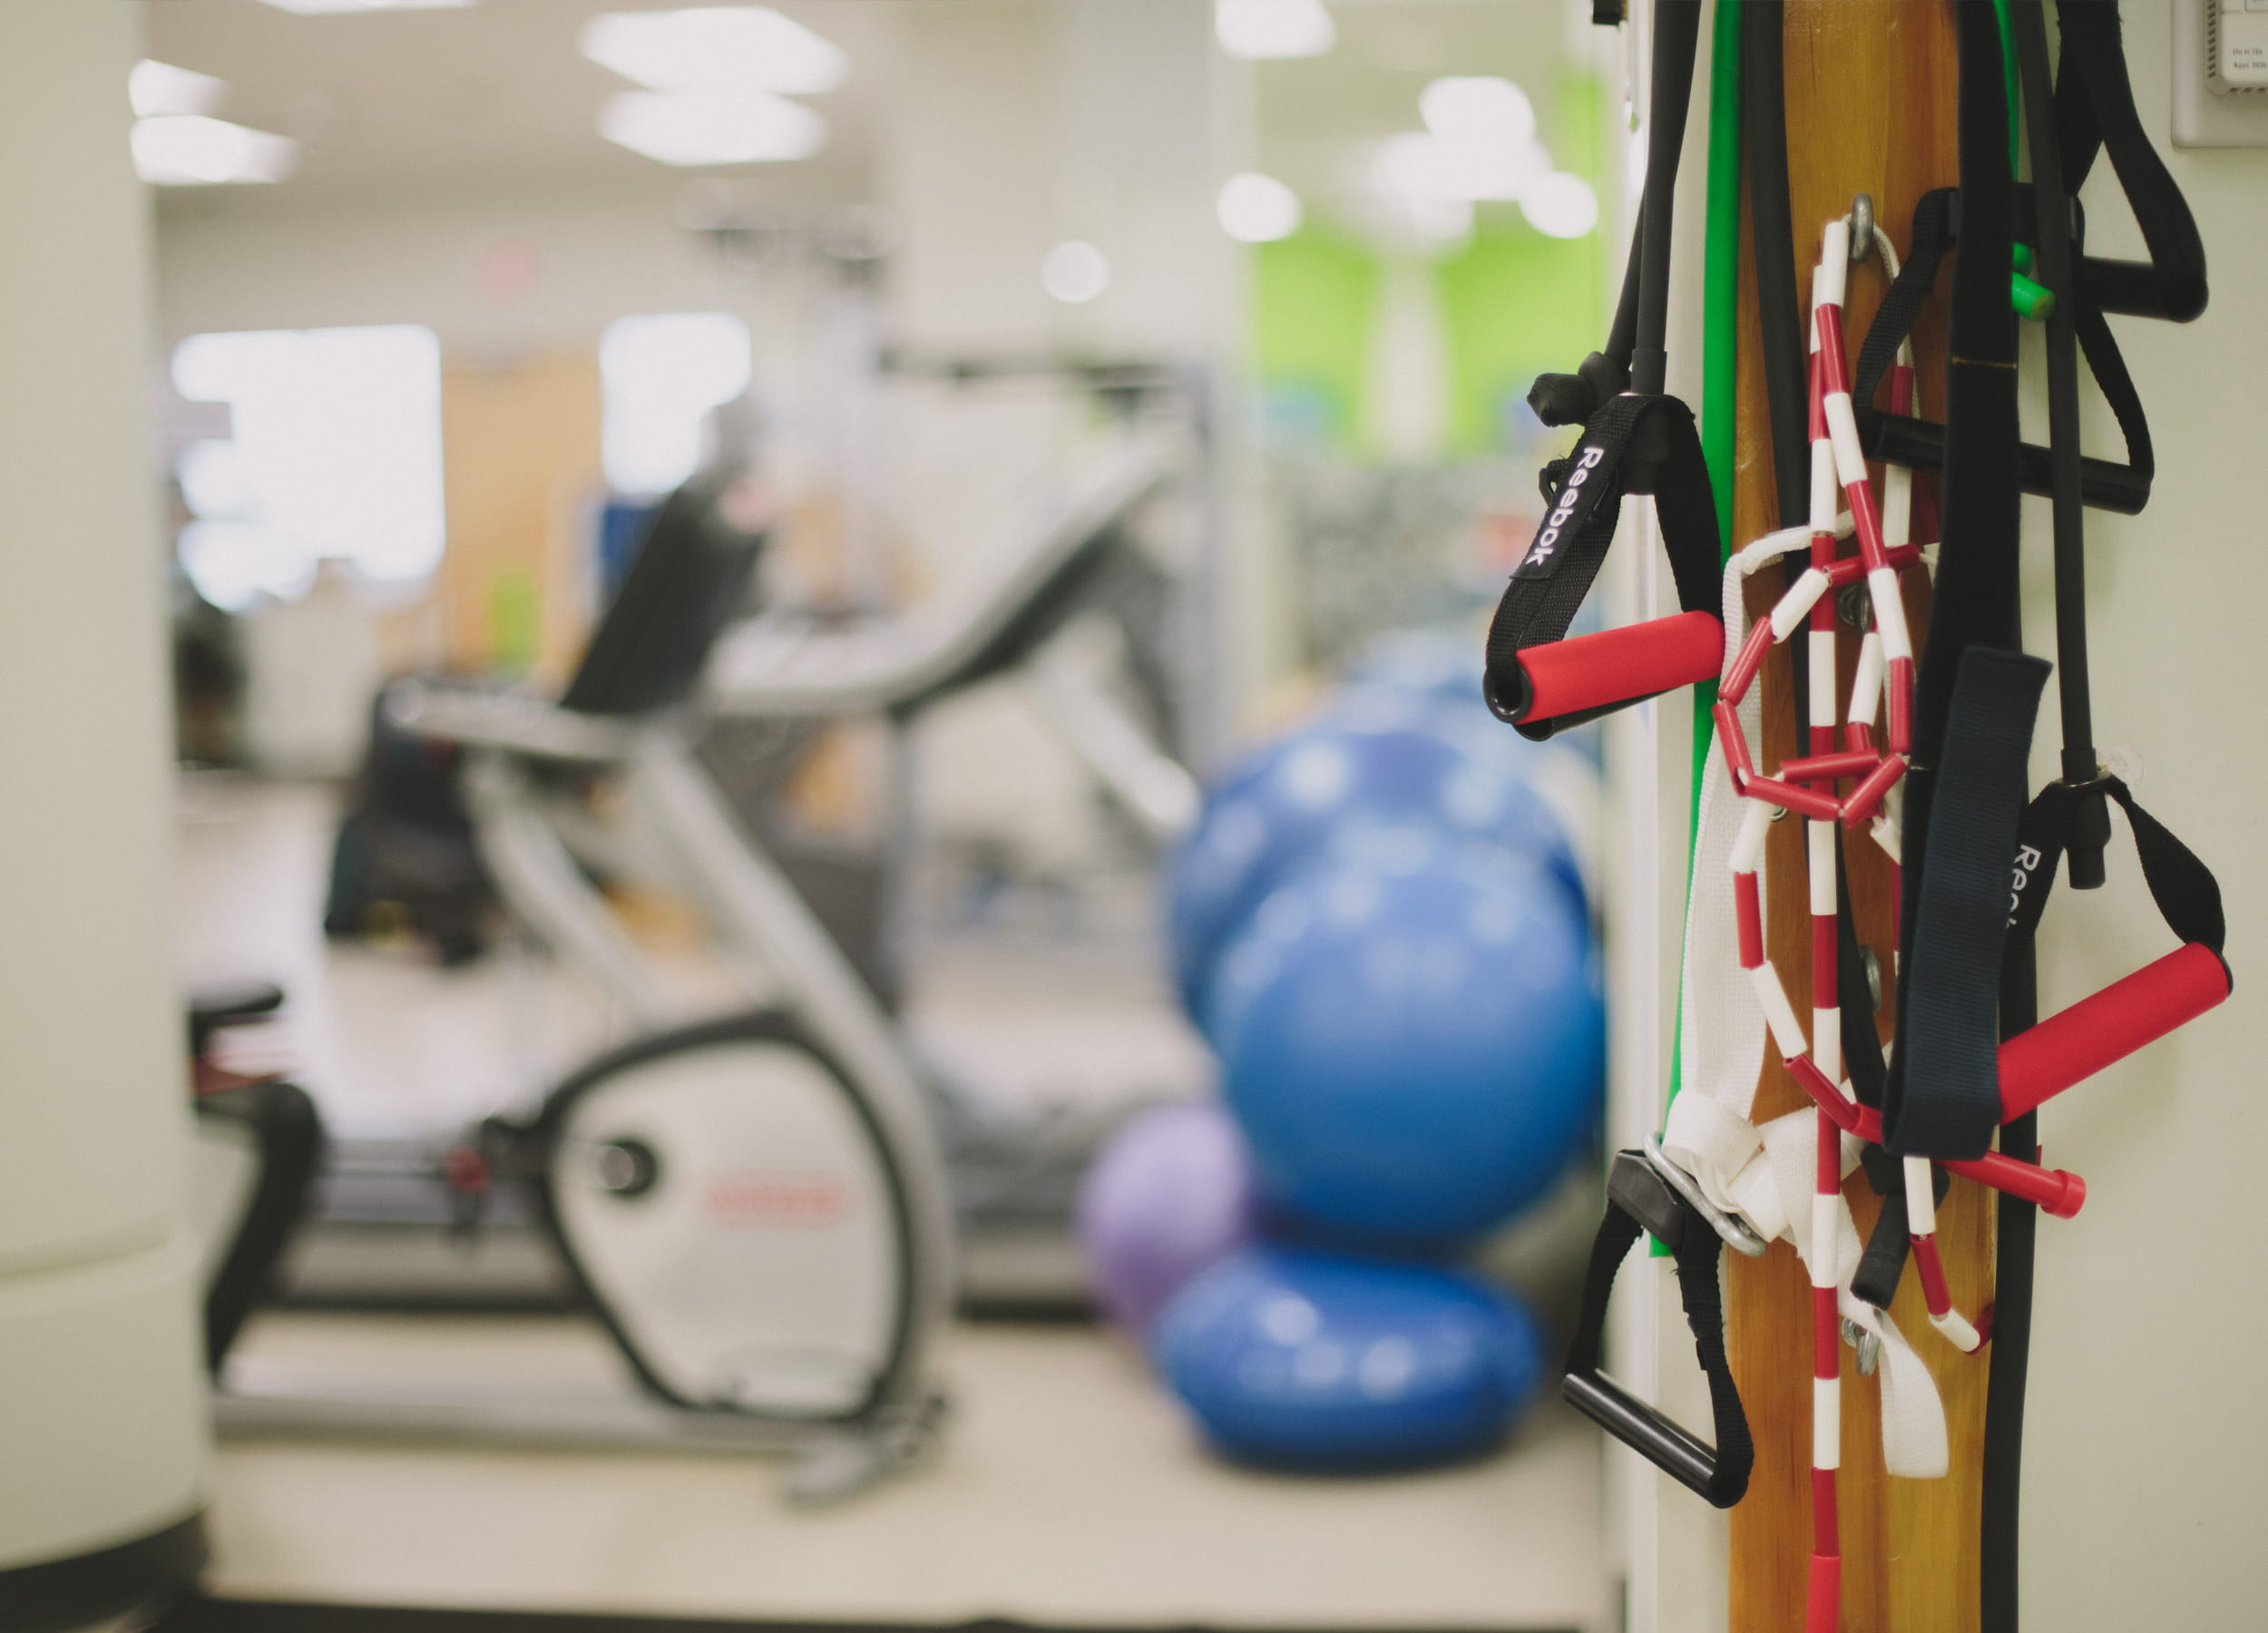 Gym equipment in the Athletic Therapy classroom